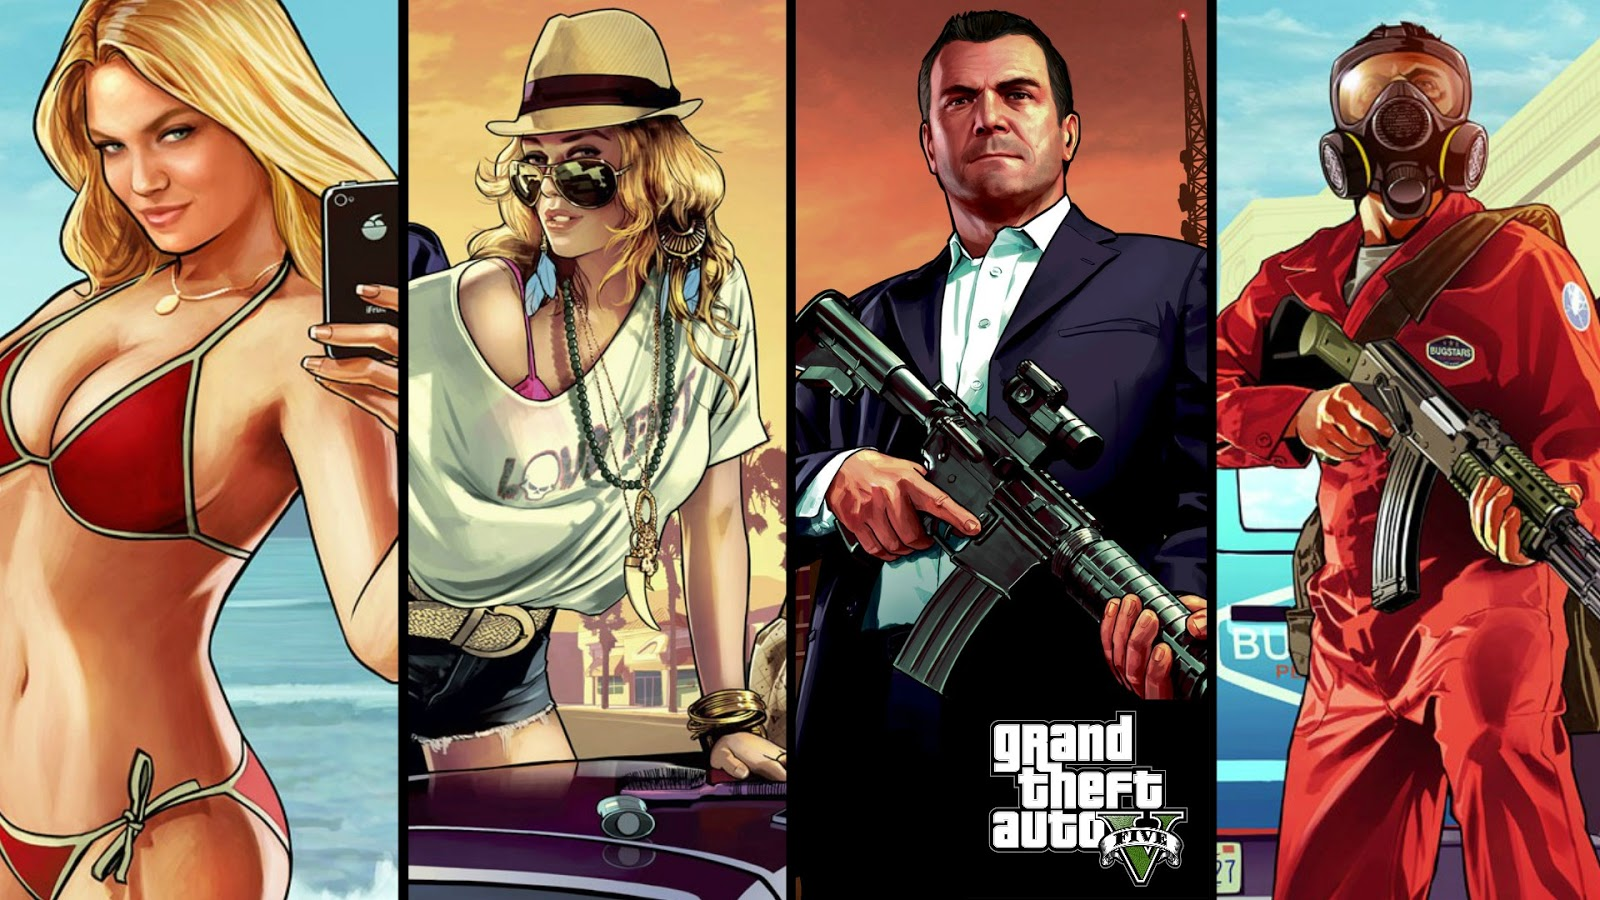 Gta V Wallpaper Hd 1080p 1080p gta v wallpapers 1600x900